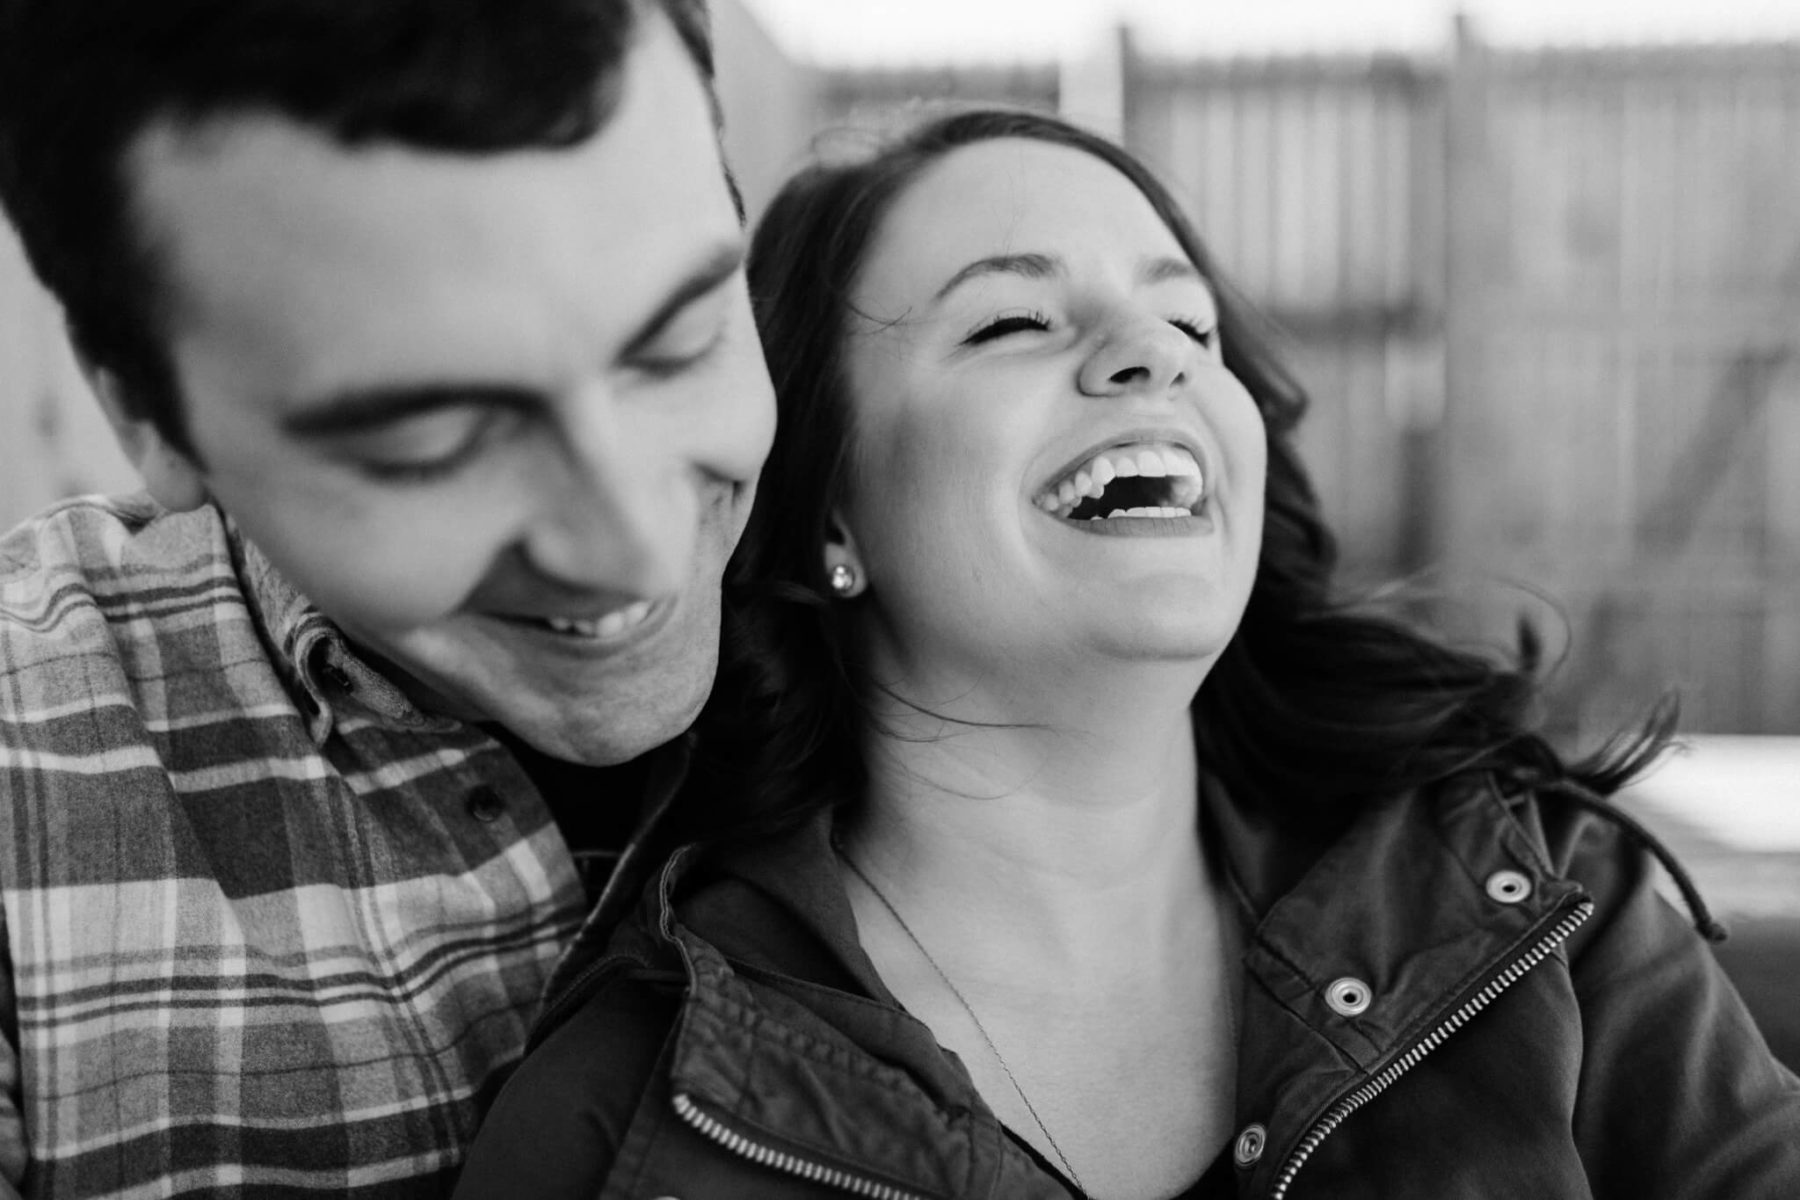 couple laughing together at a brewery